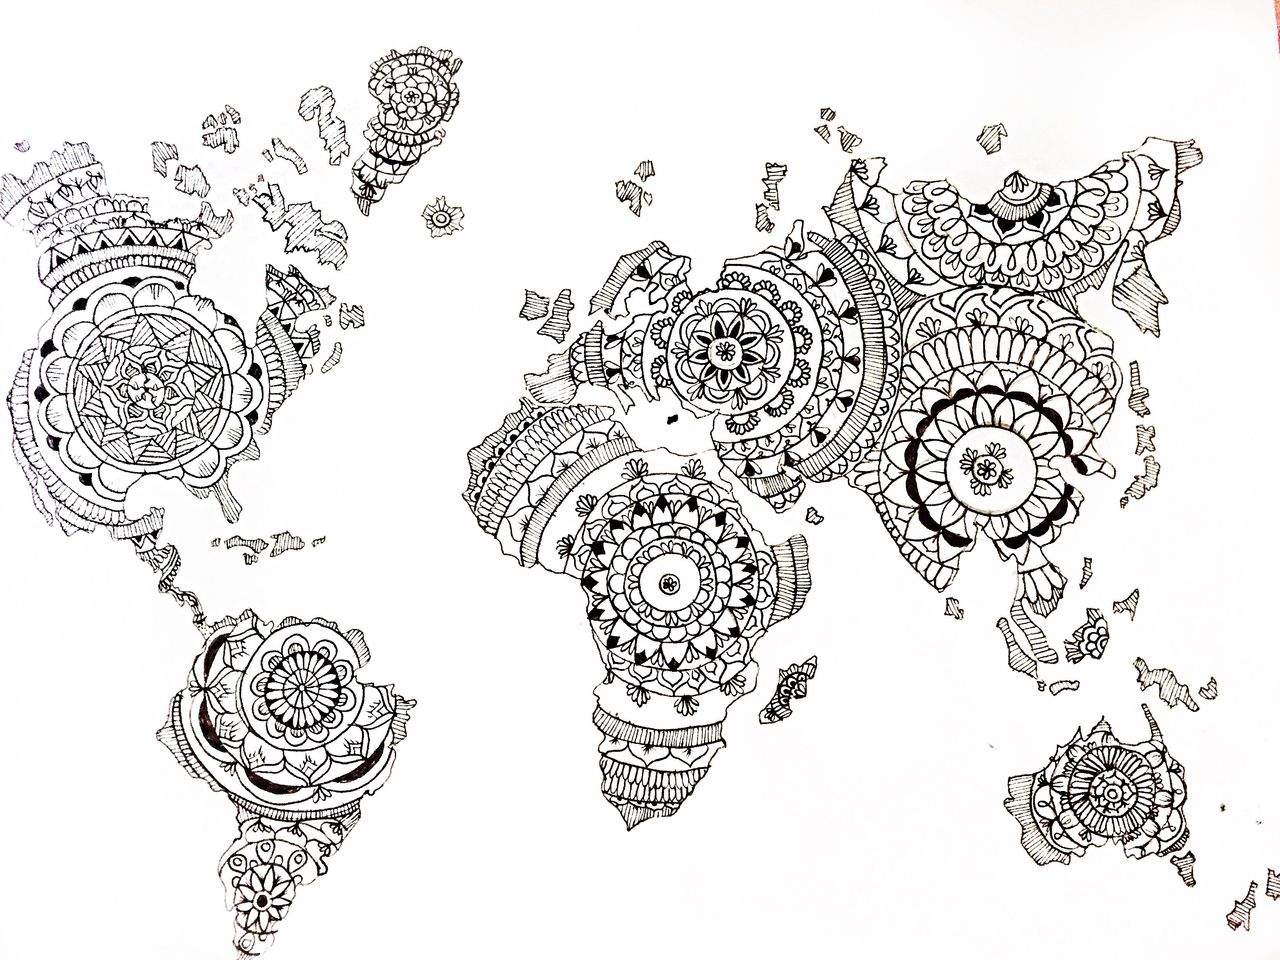 Colouring in world map - Image Result For World Map Mandala